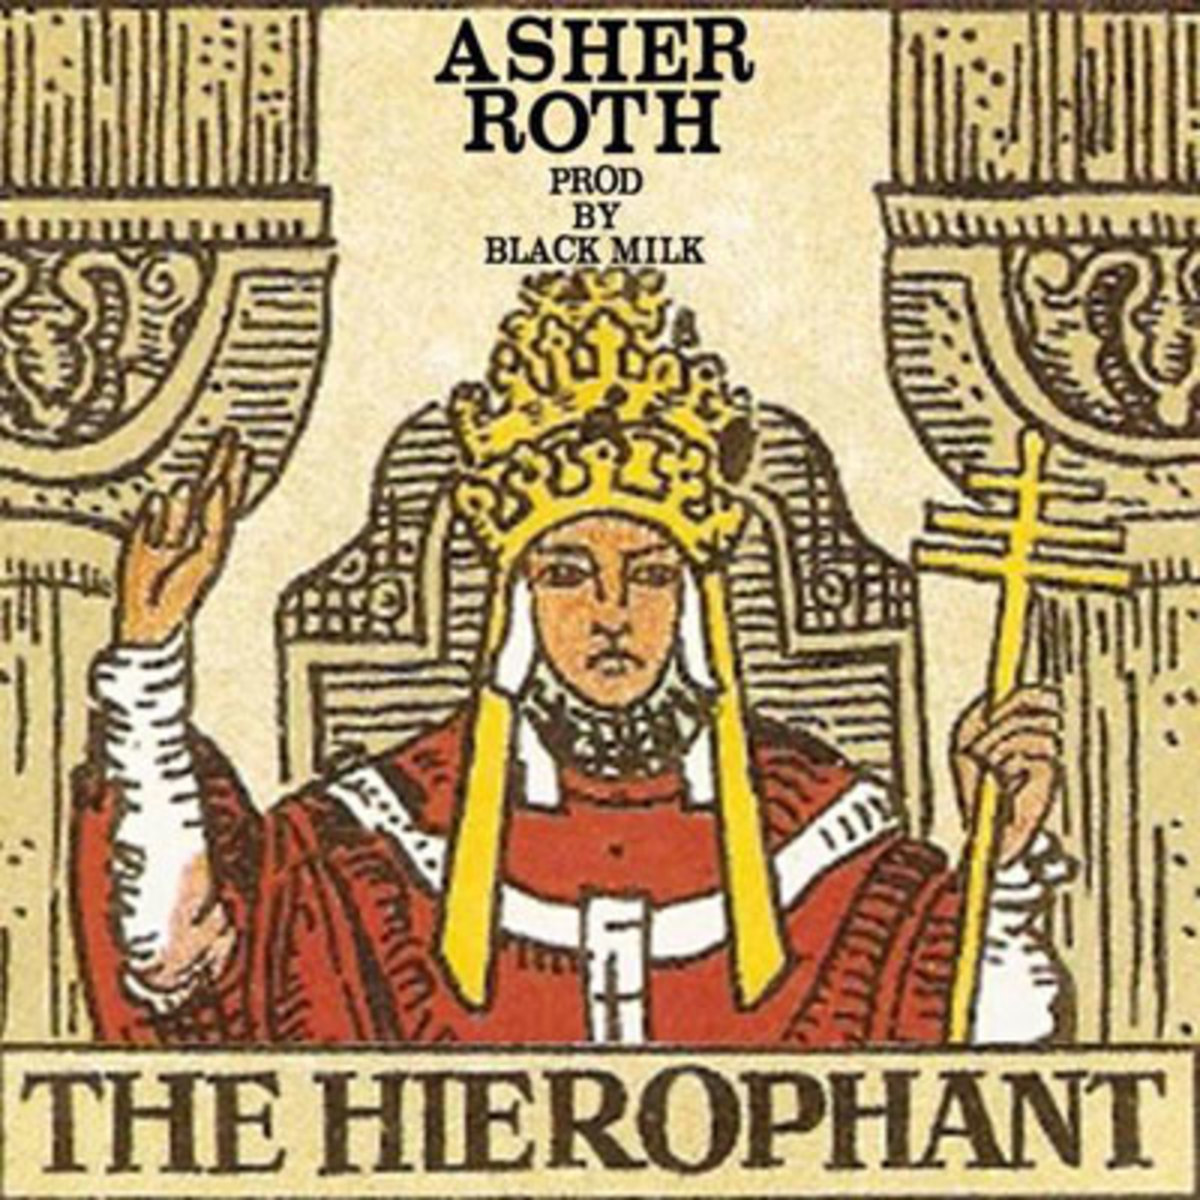 asher-roth-the-hierophant.jpg